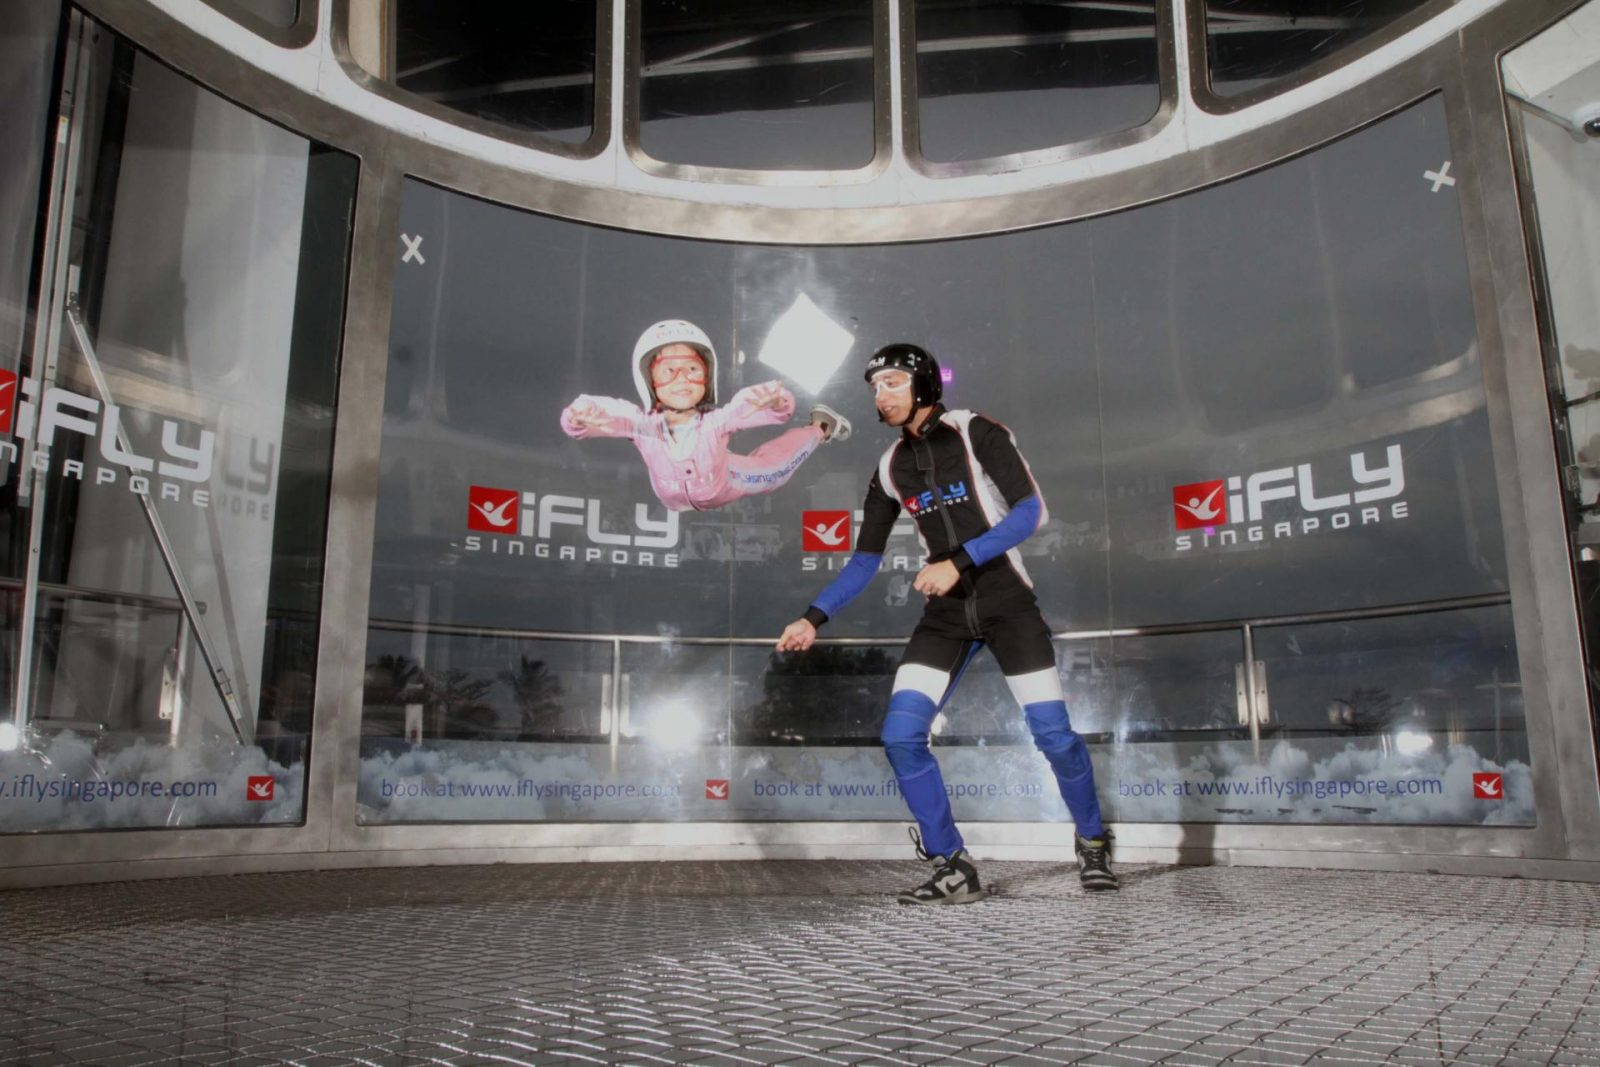 iFly Singapore kids indoor skydiving